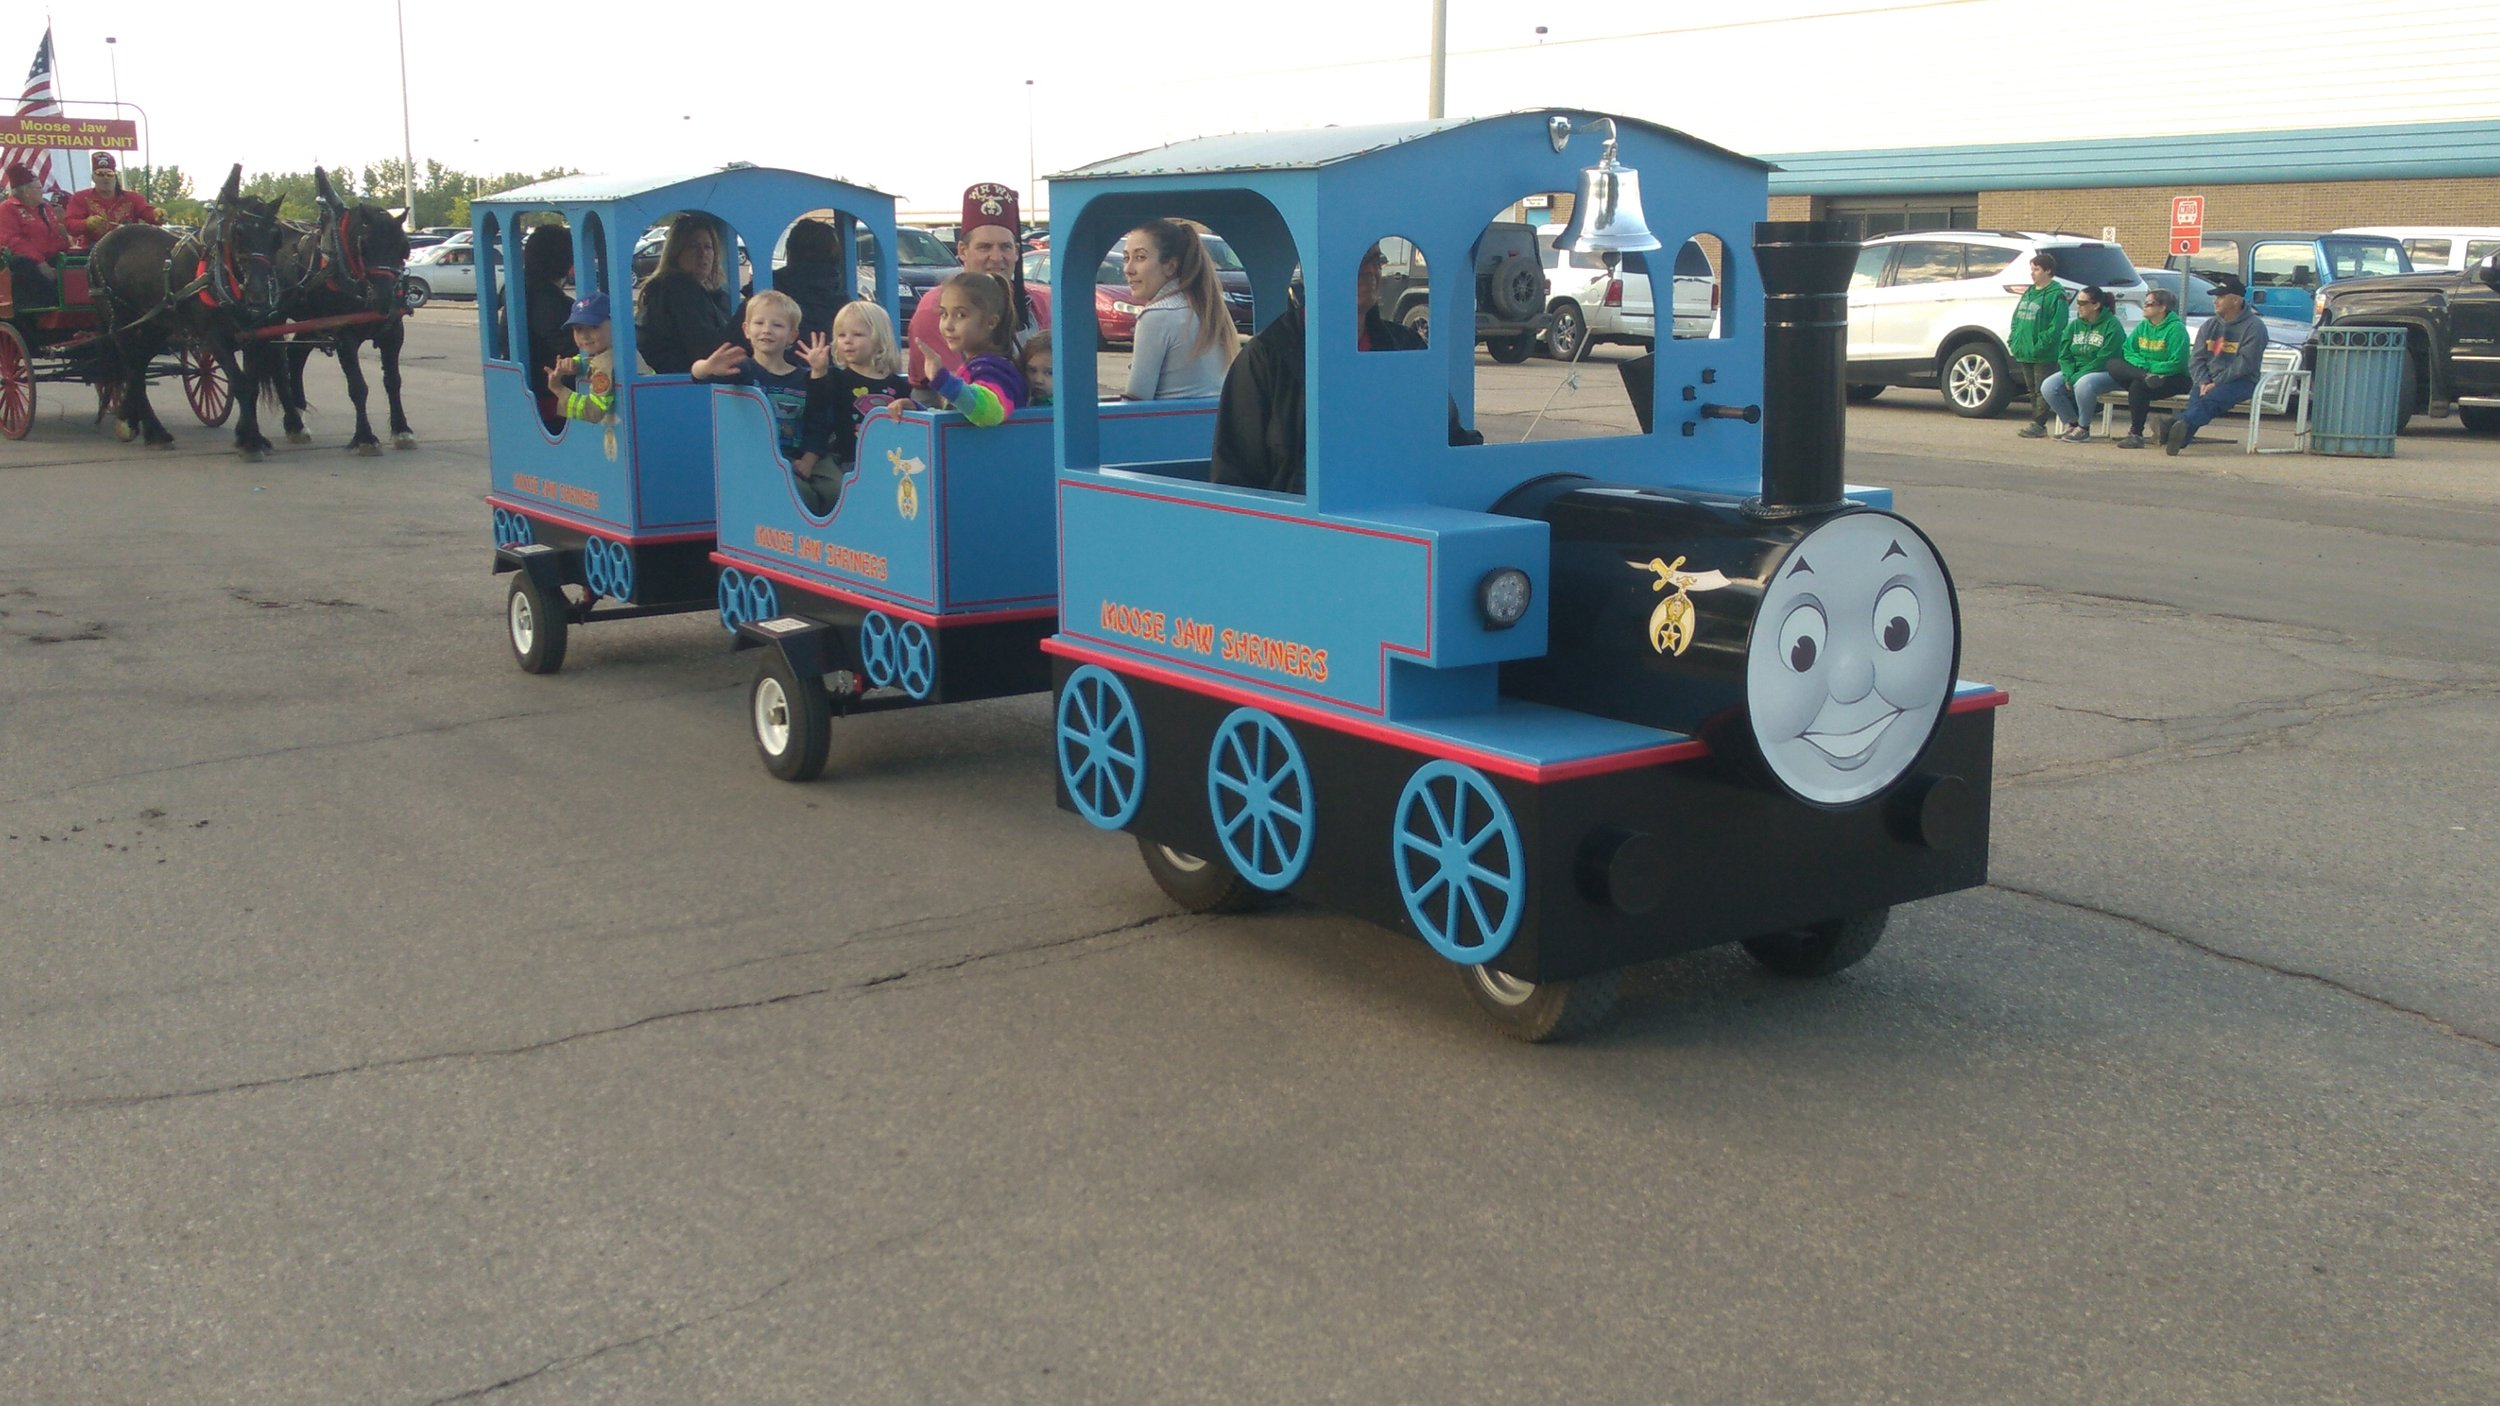 Thomas The Train was in the parade